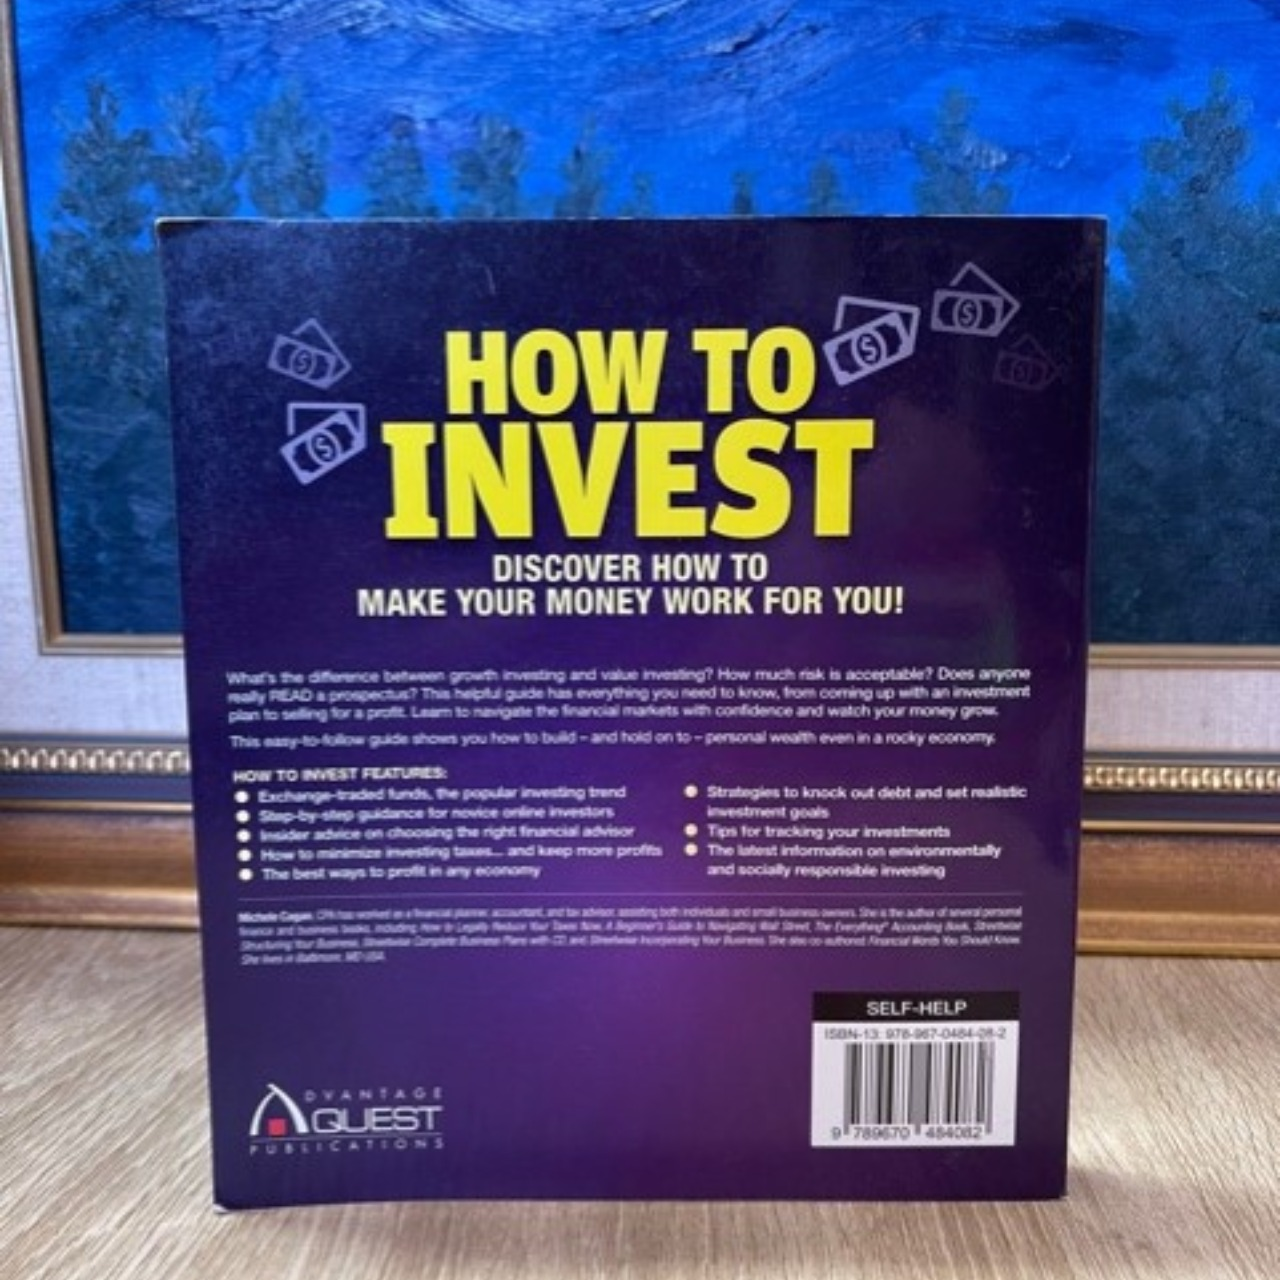 HOW TO INVEST- SMART STRATEGIES TO SECURE YOUR FINANCIAL FUTURE- BOOK